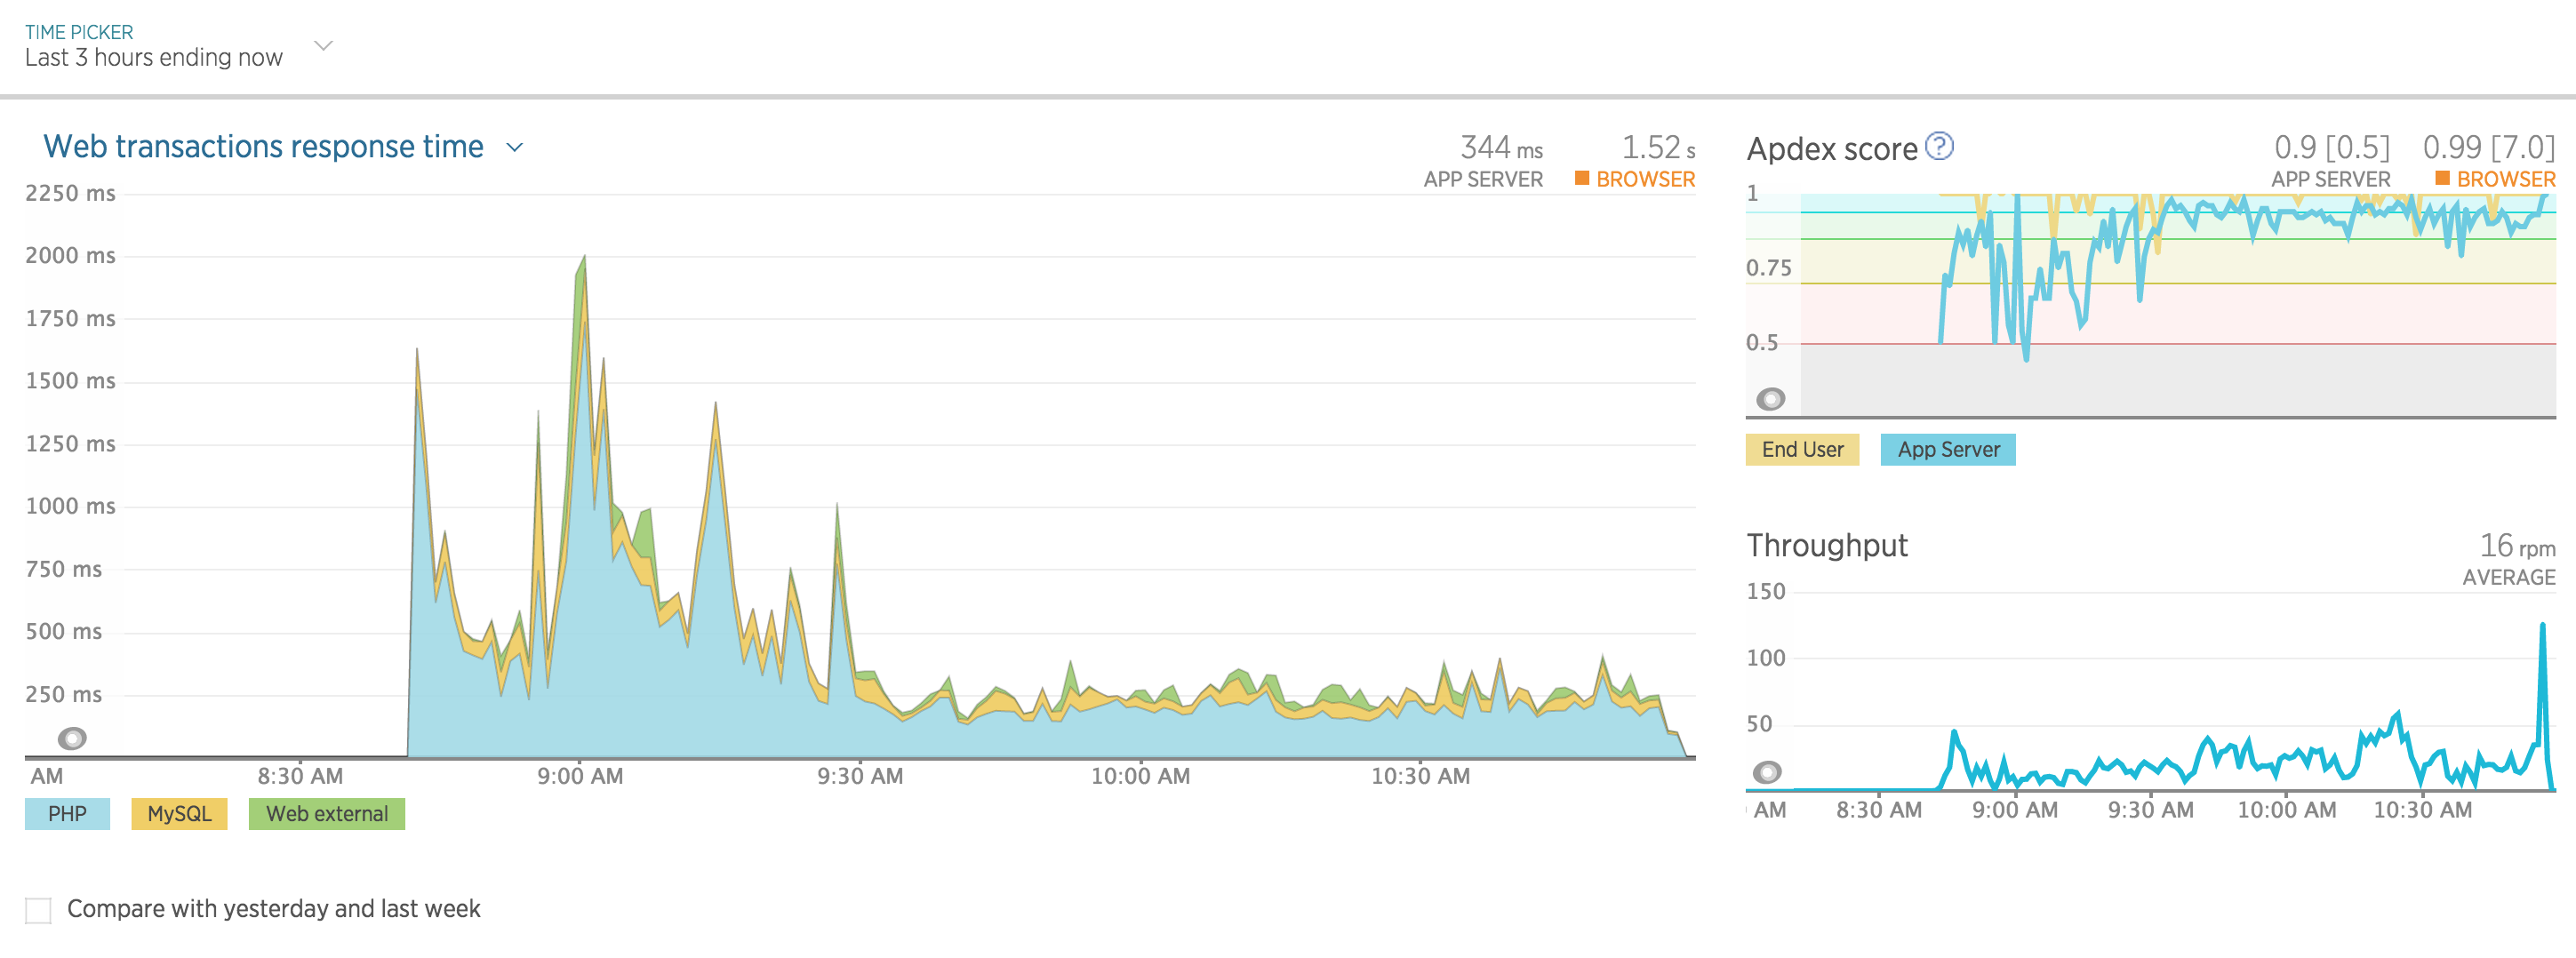 Using the New Relic APM